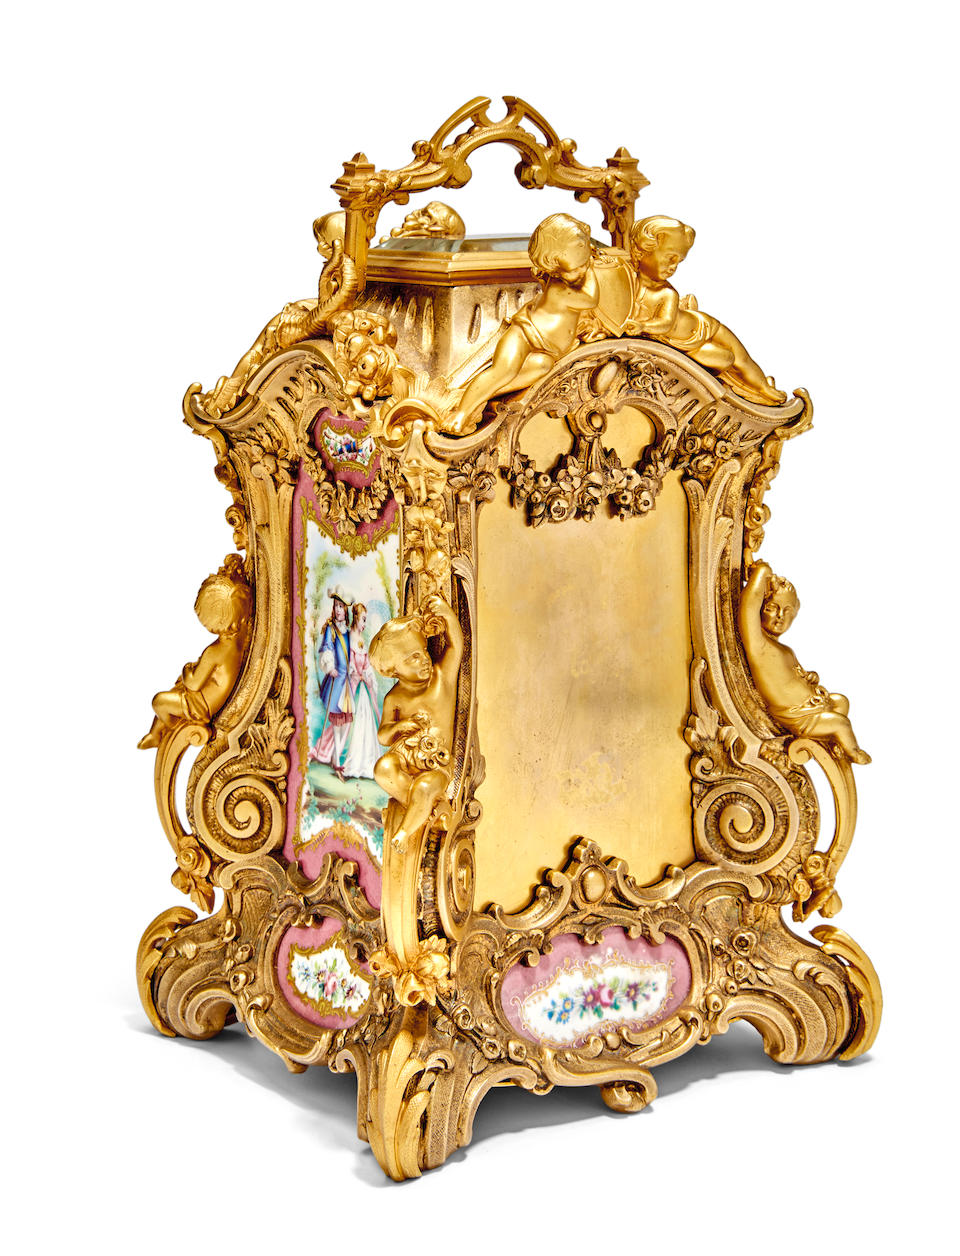 An elaborate rococo cast carriage clock with pink porcelain panelsLast quarter 19th century